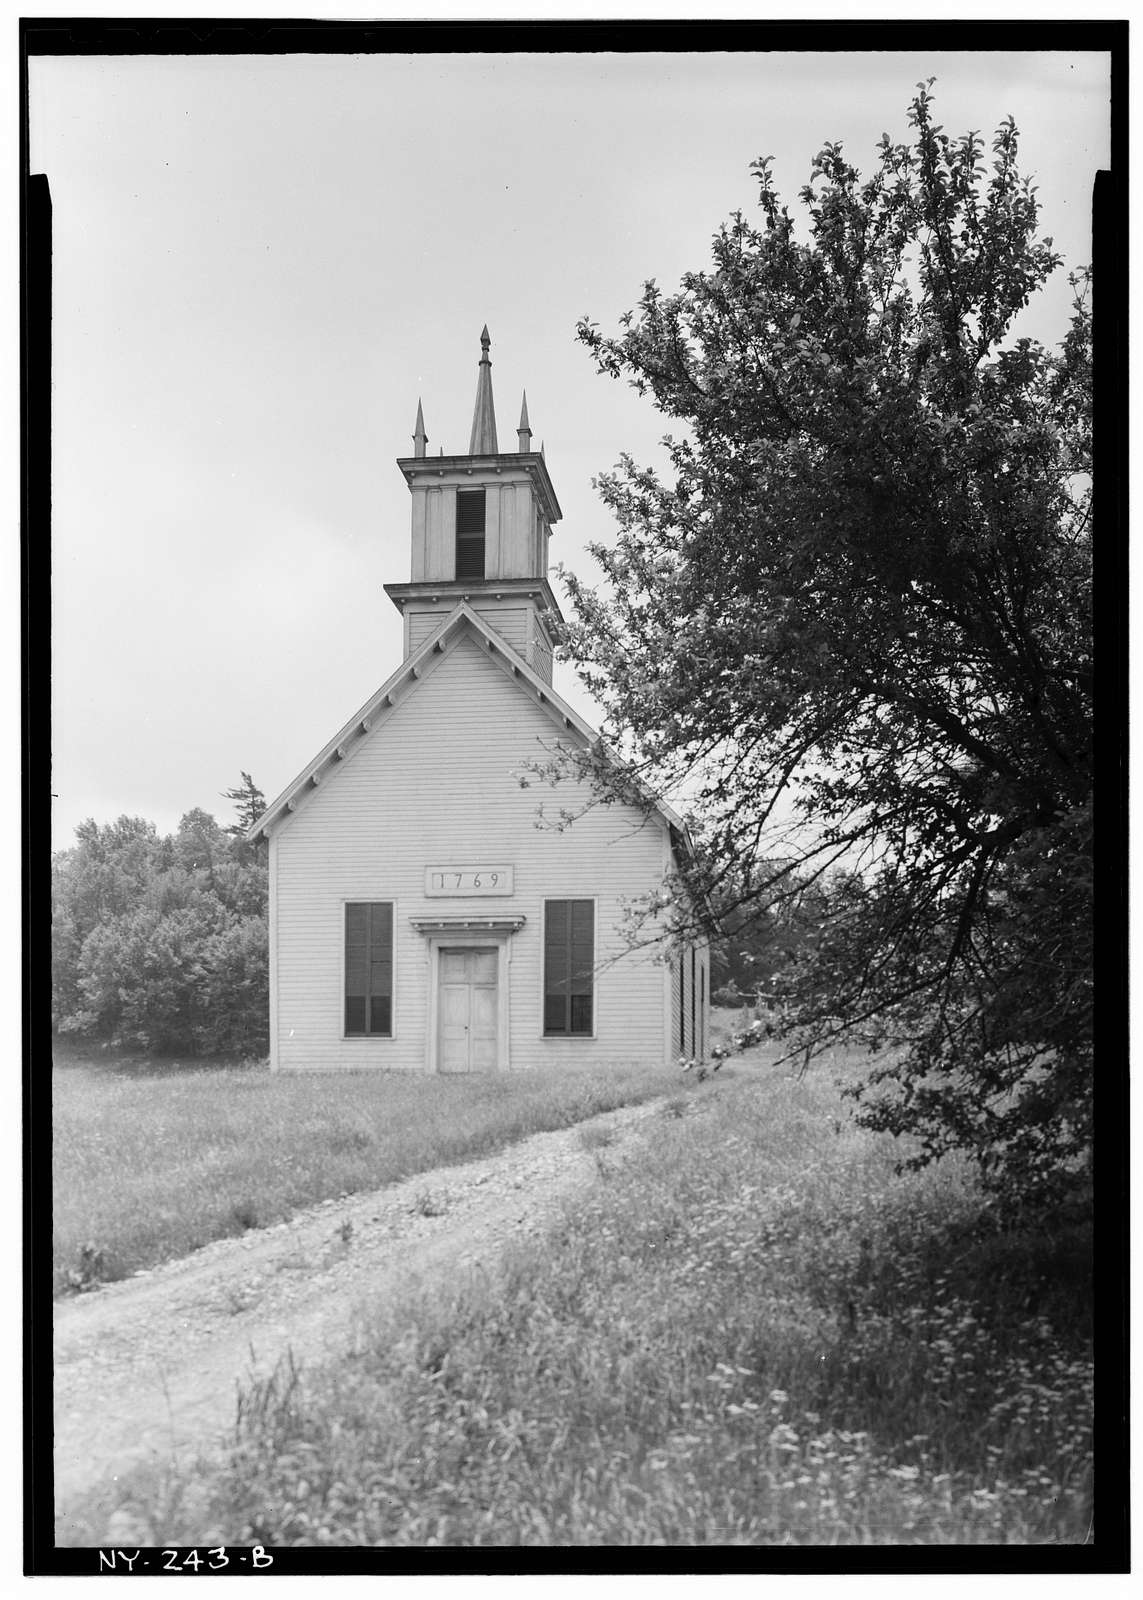 Indian Castle Church, State Route 55, Indian Castle, Herkimer County, NY